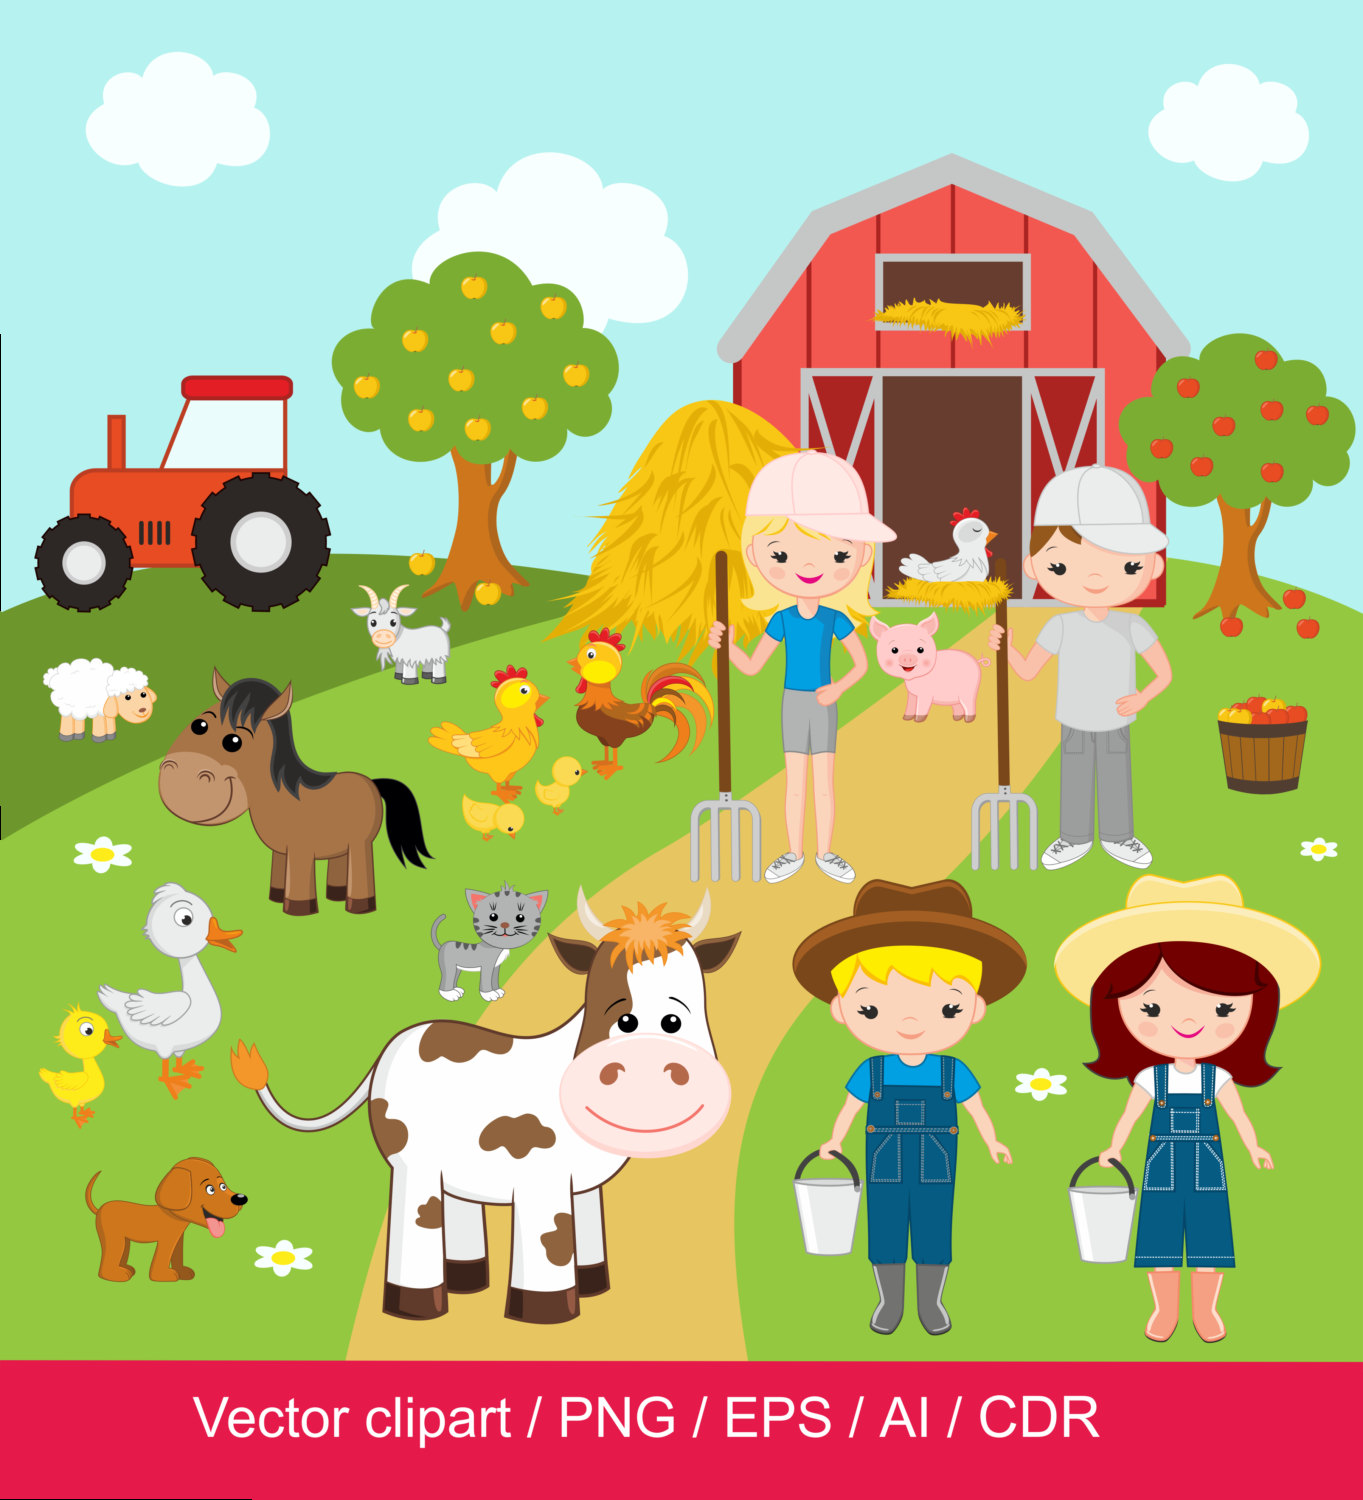 Farmyard clipart 20 free Cliparts | Download images on ...Farm Scene Clip Art Pictures